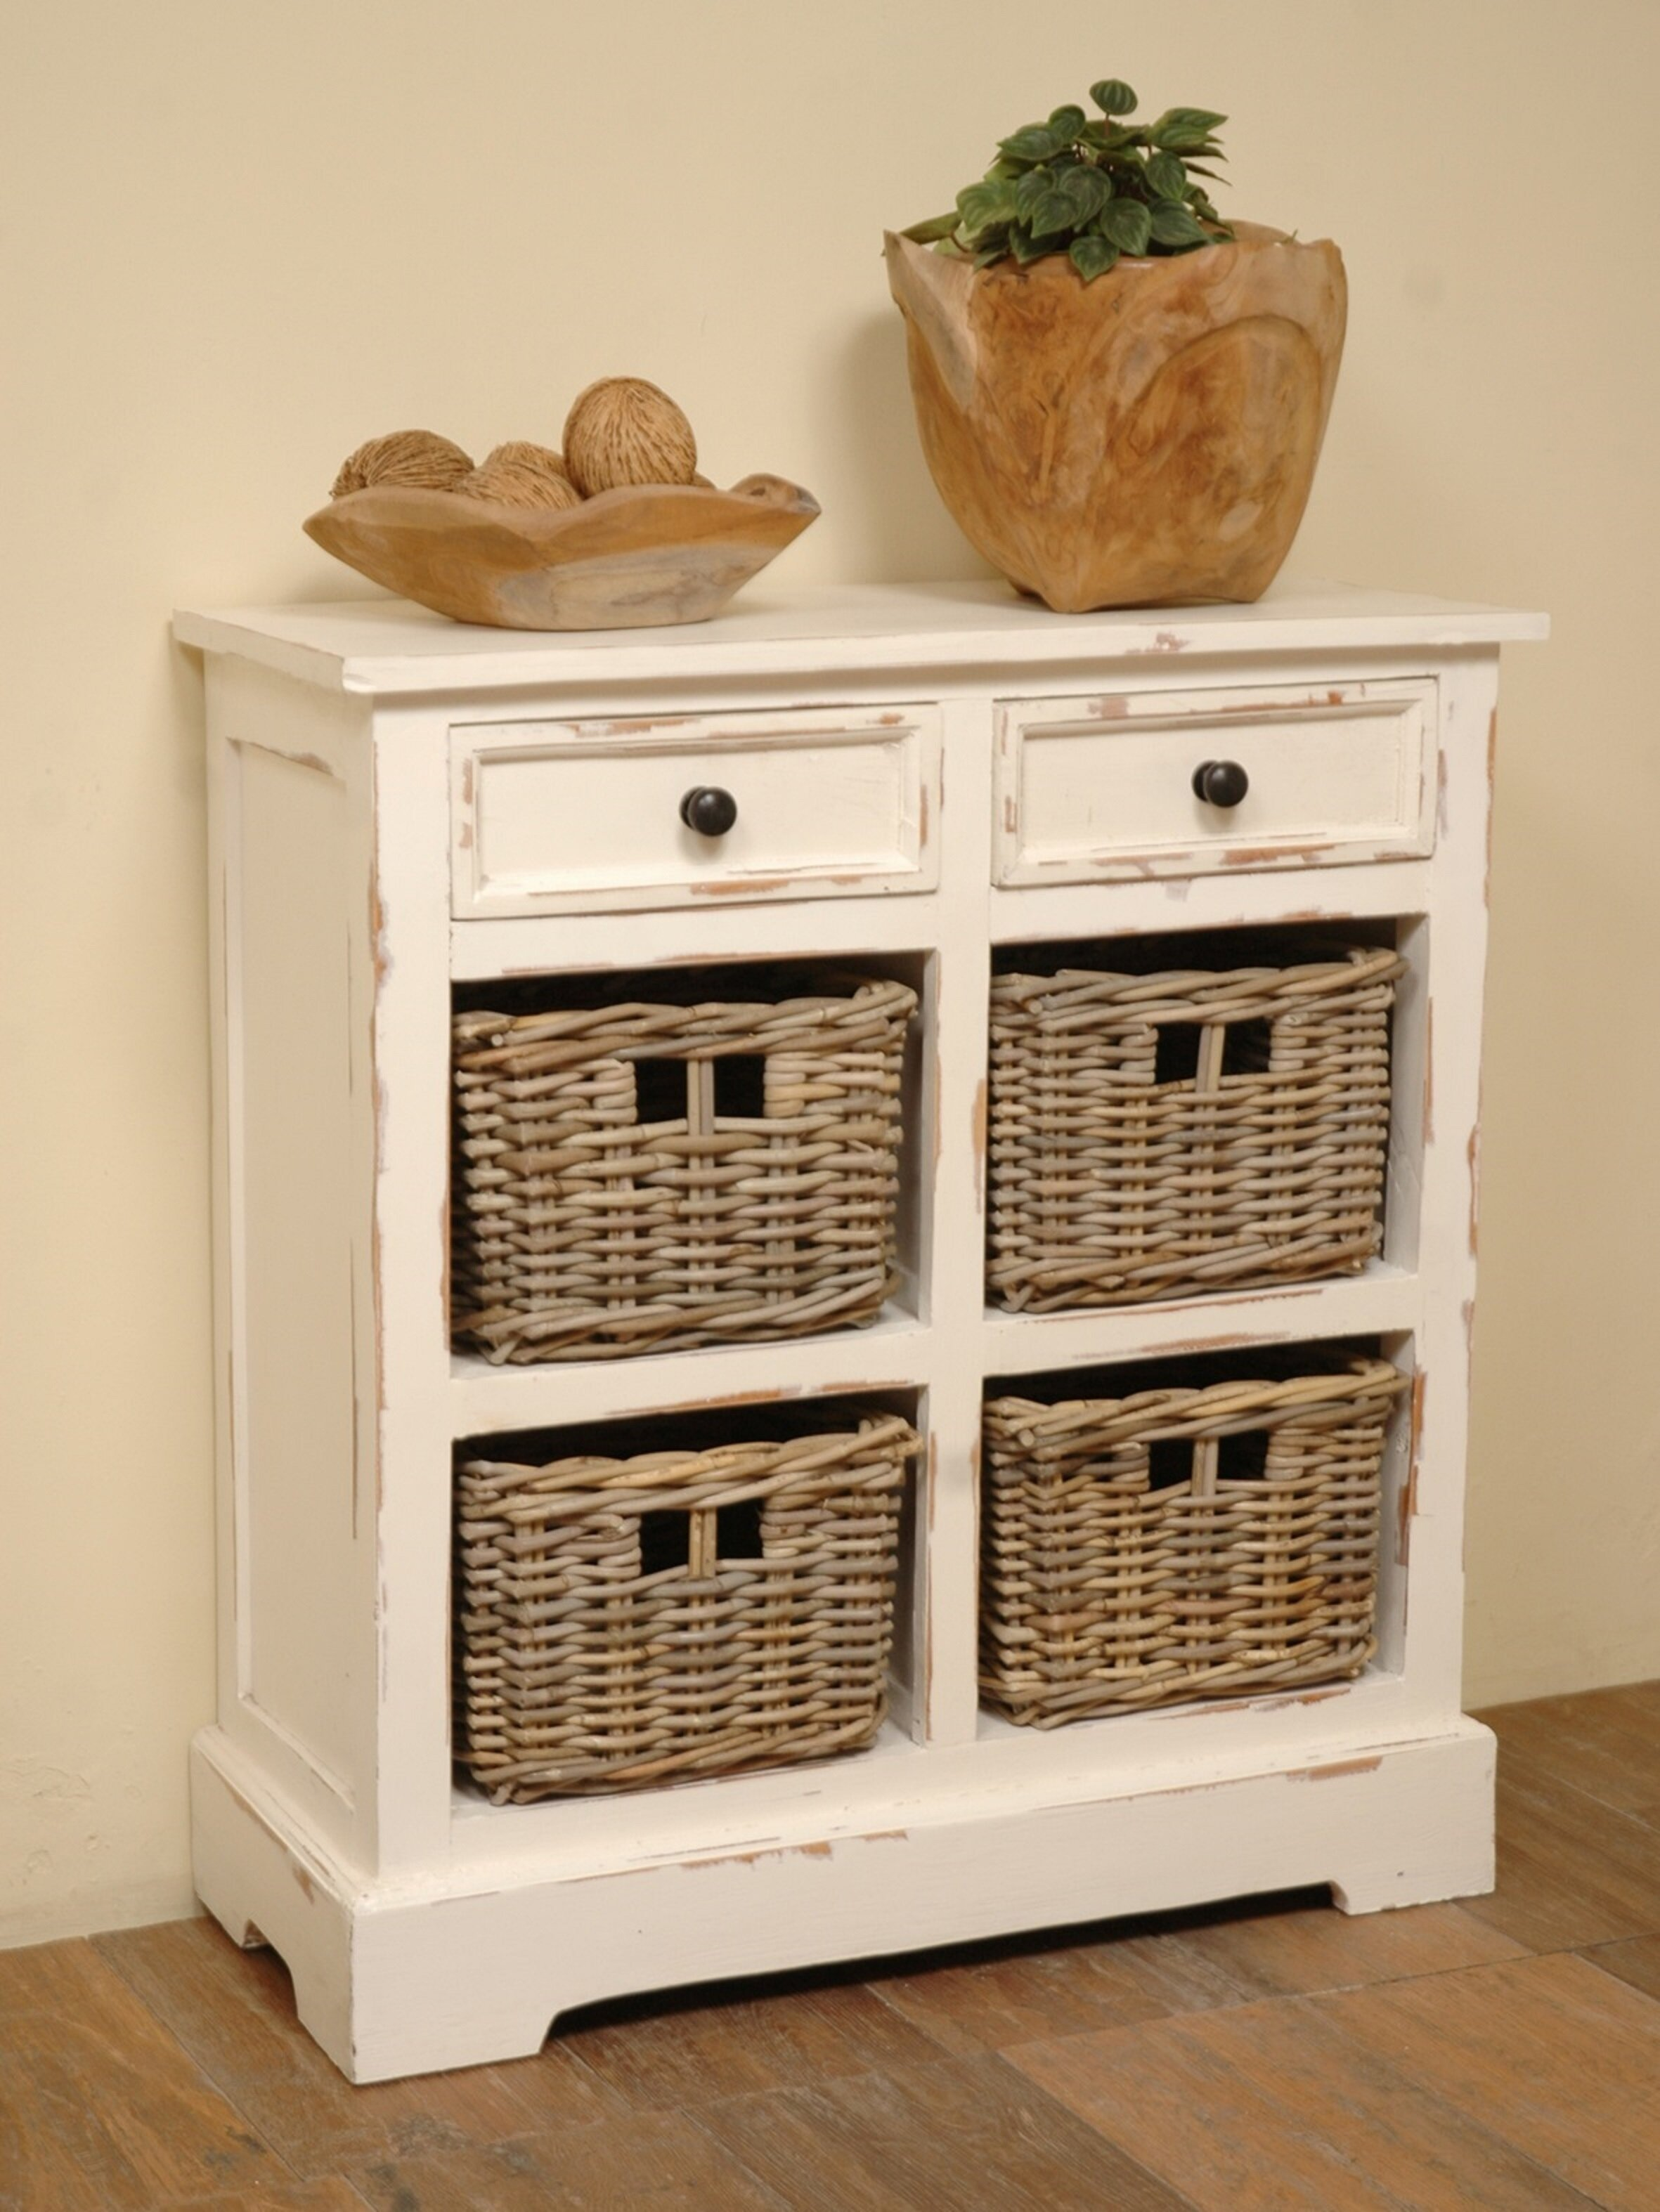 Brown / White Storage Rack with Baskets By August Grove